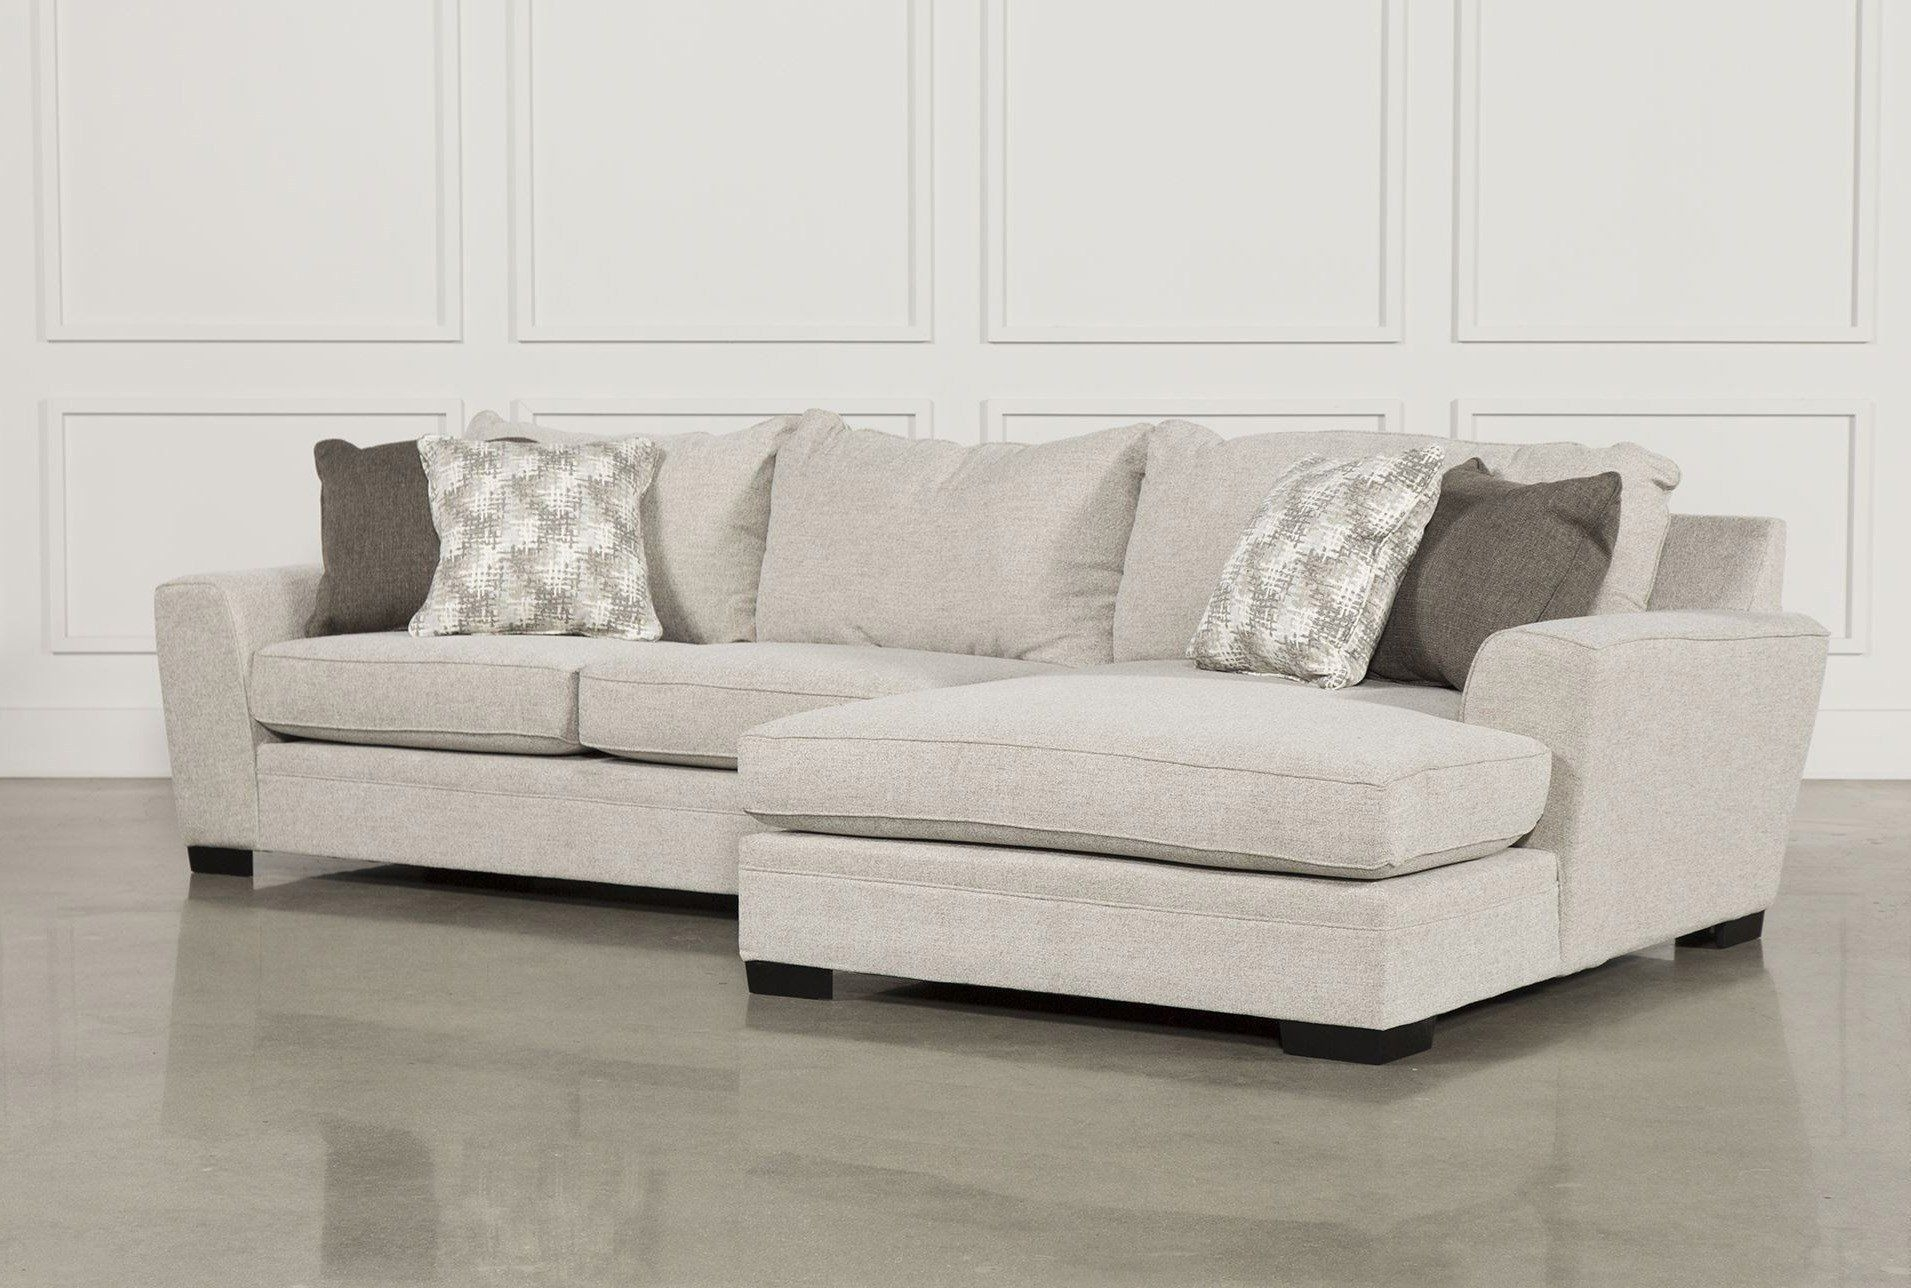 16 Luxury Serta Cooling Memoryfil Pillow | Beautiful Pillow Design In Aquarius Light Grey 2 Piece Sectionals With Laf Chaise (Image 1 of 25)